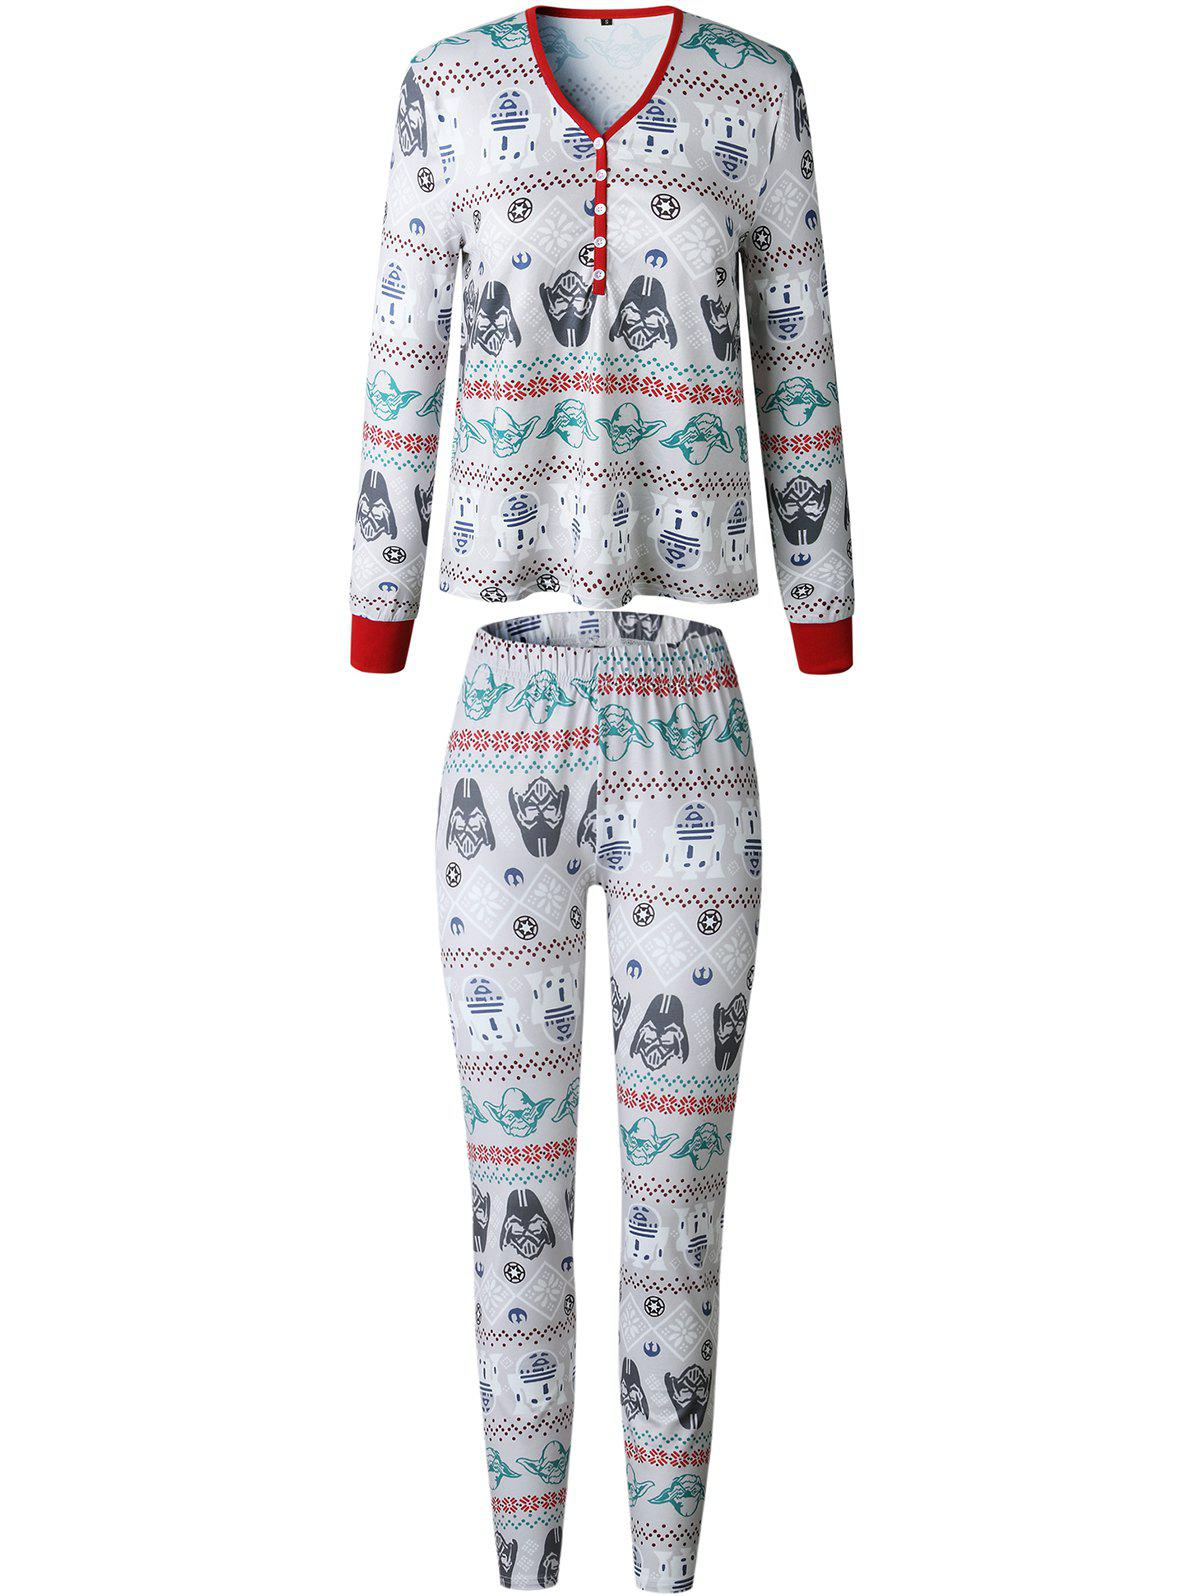 New Christmas  Family Pajama Long Sleeves Casual  Print  Sets Parent-Child Home Suit Pyjamas